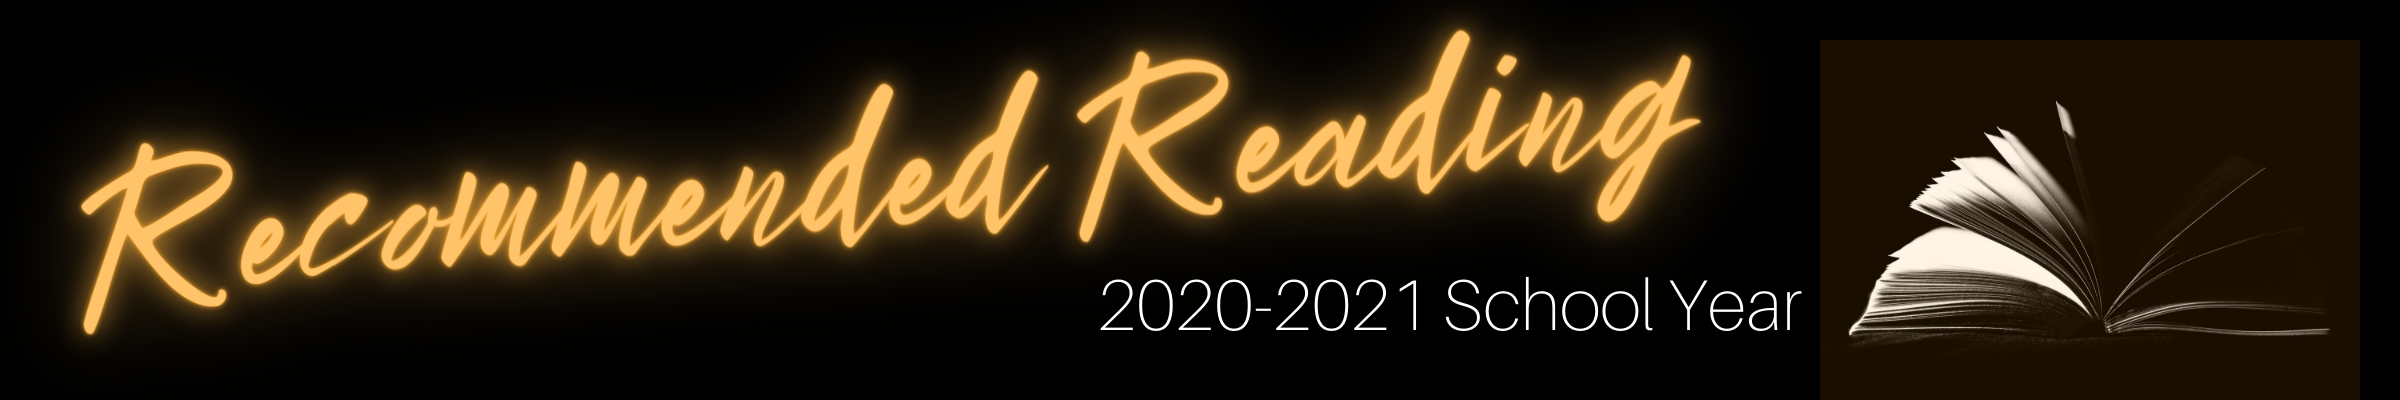 Recommended Reading 2020-2021 School Year